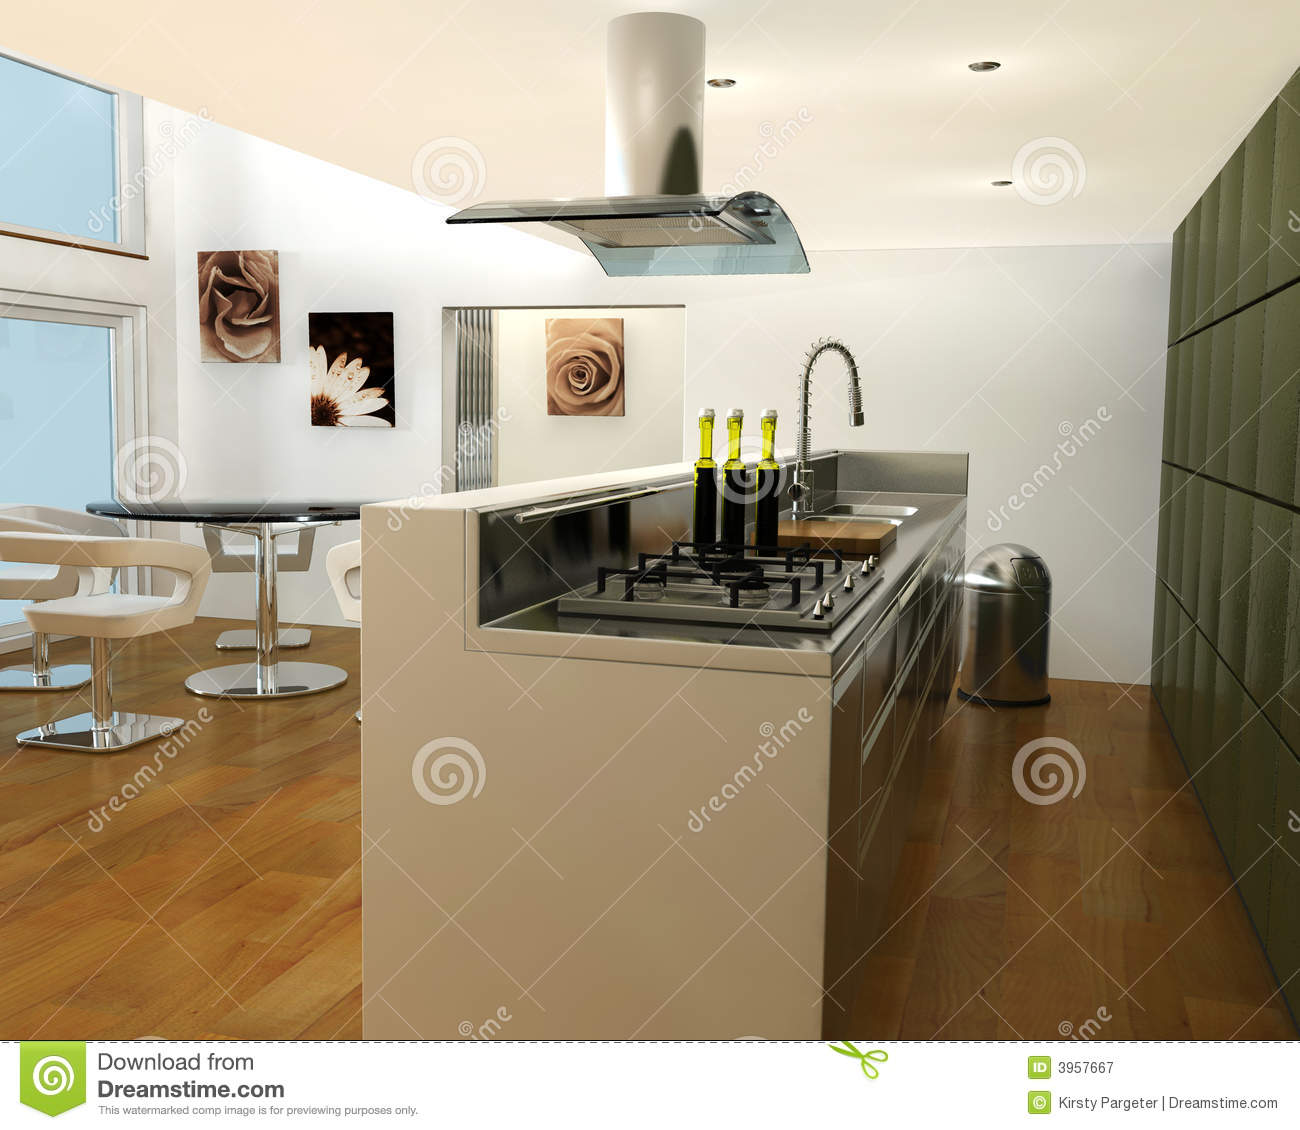 Cuisine contemporaine photographie stock libre de droits for Cuisine 3d plus